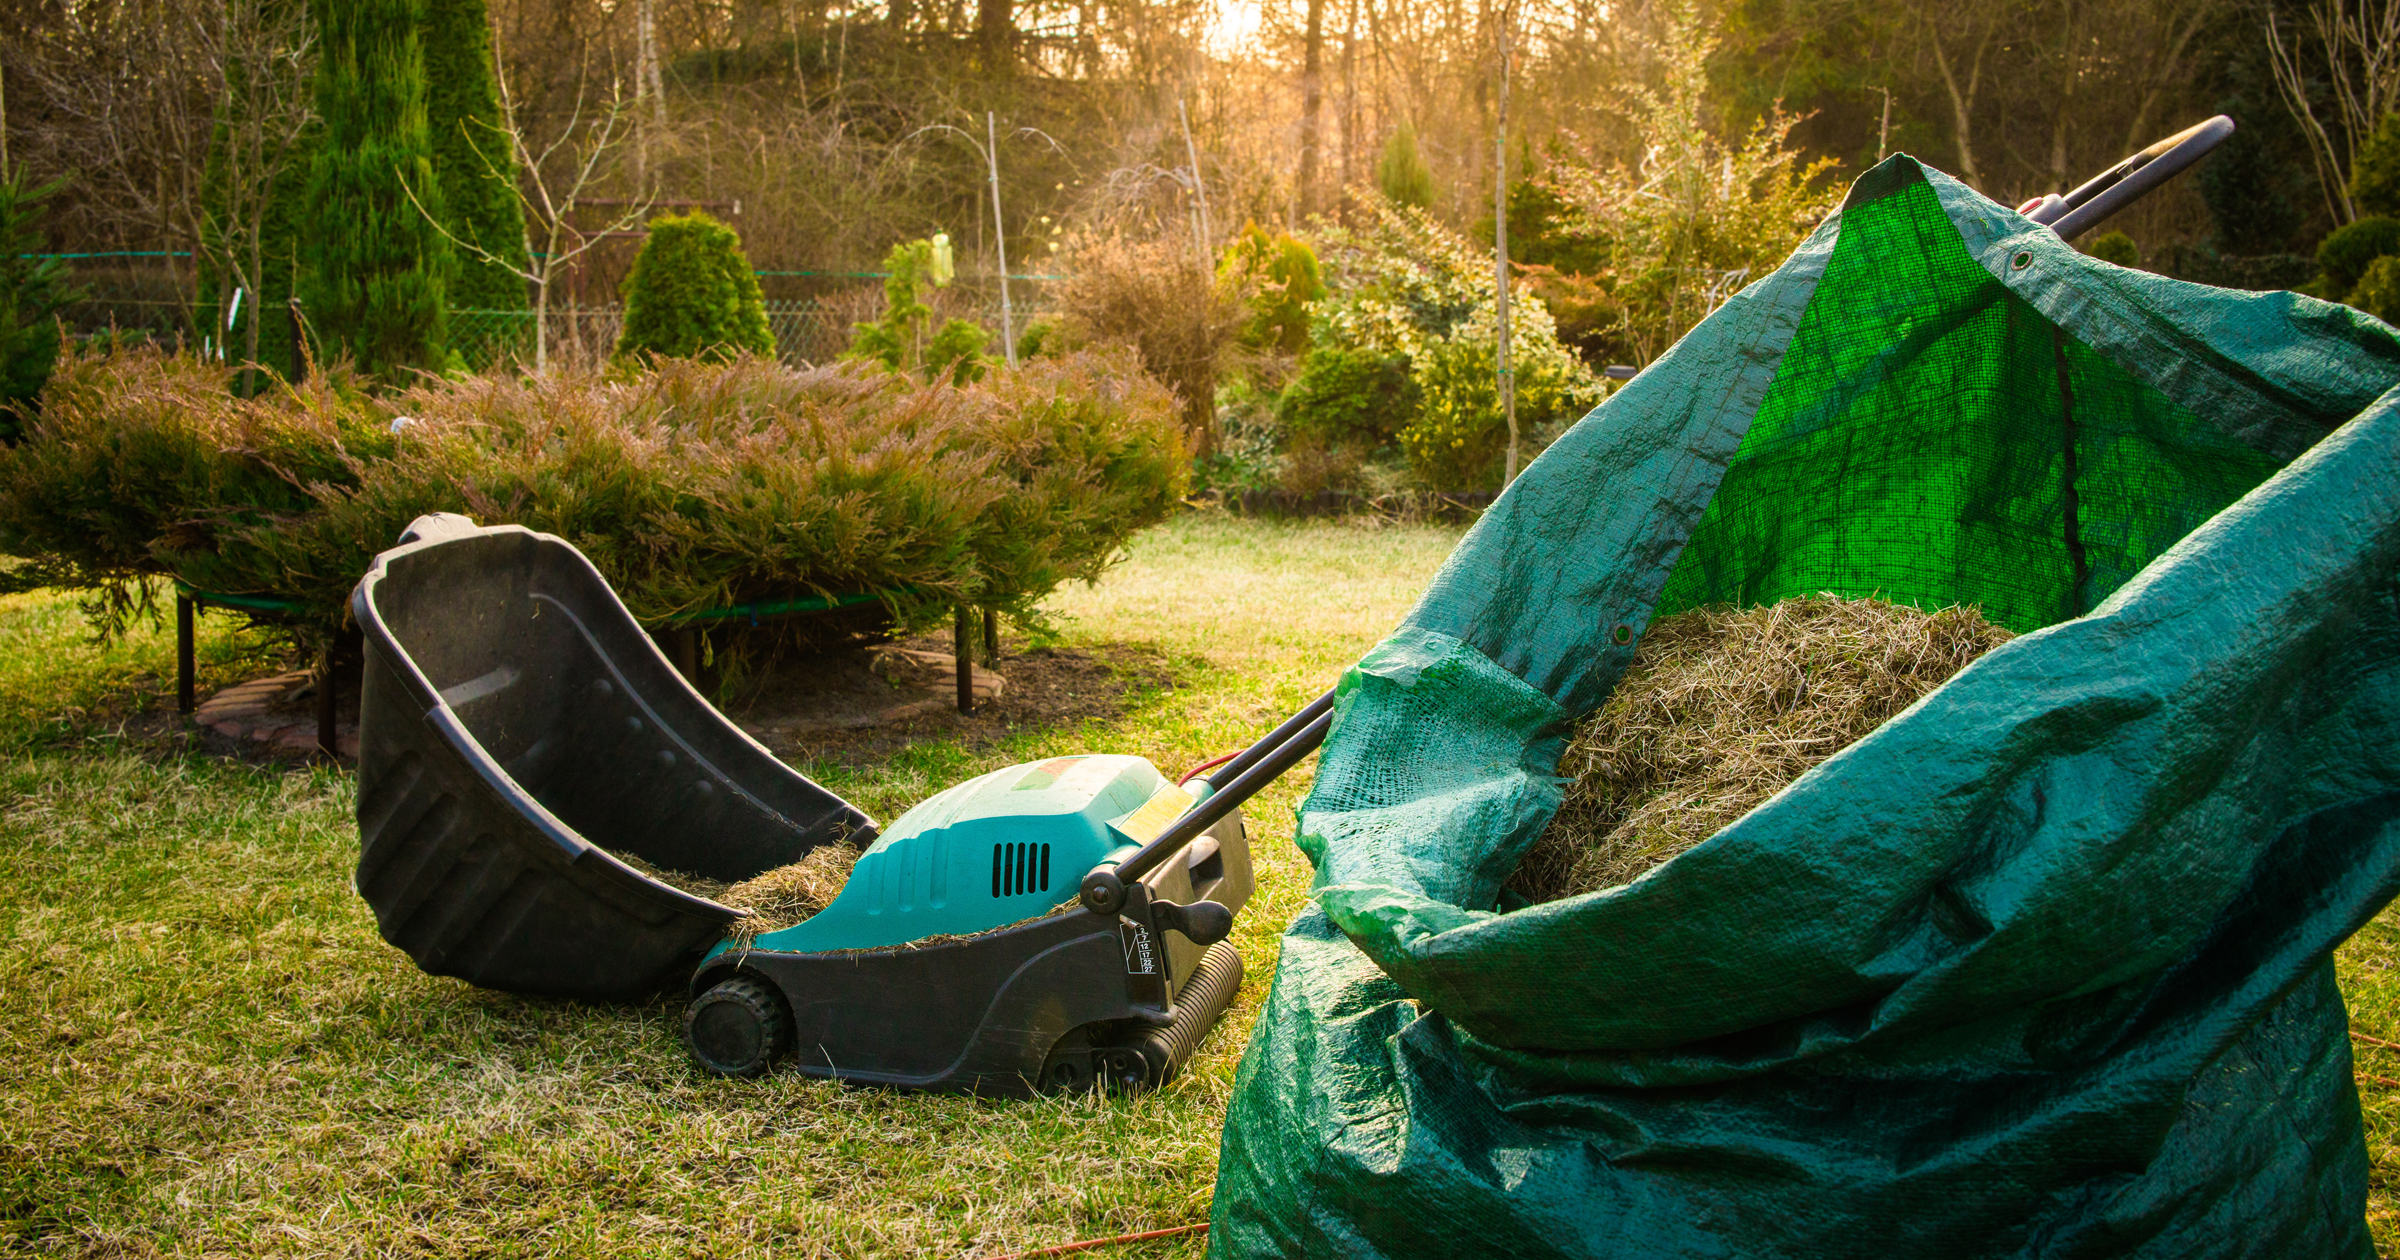 Prepping your yard for spring